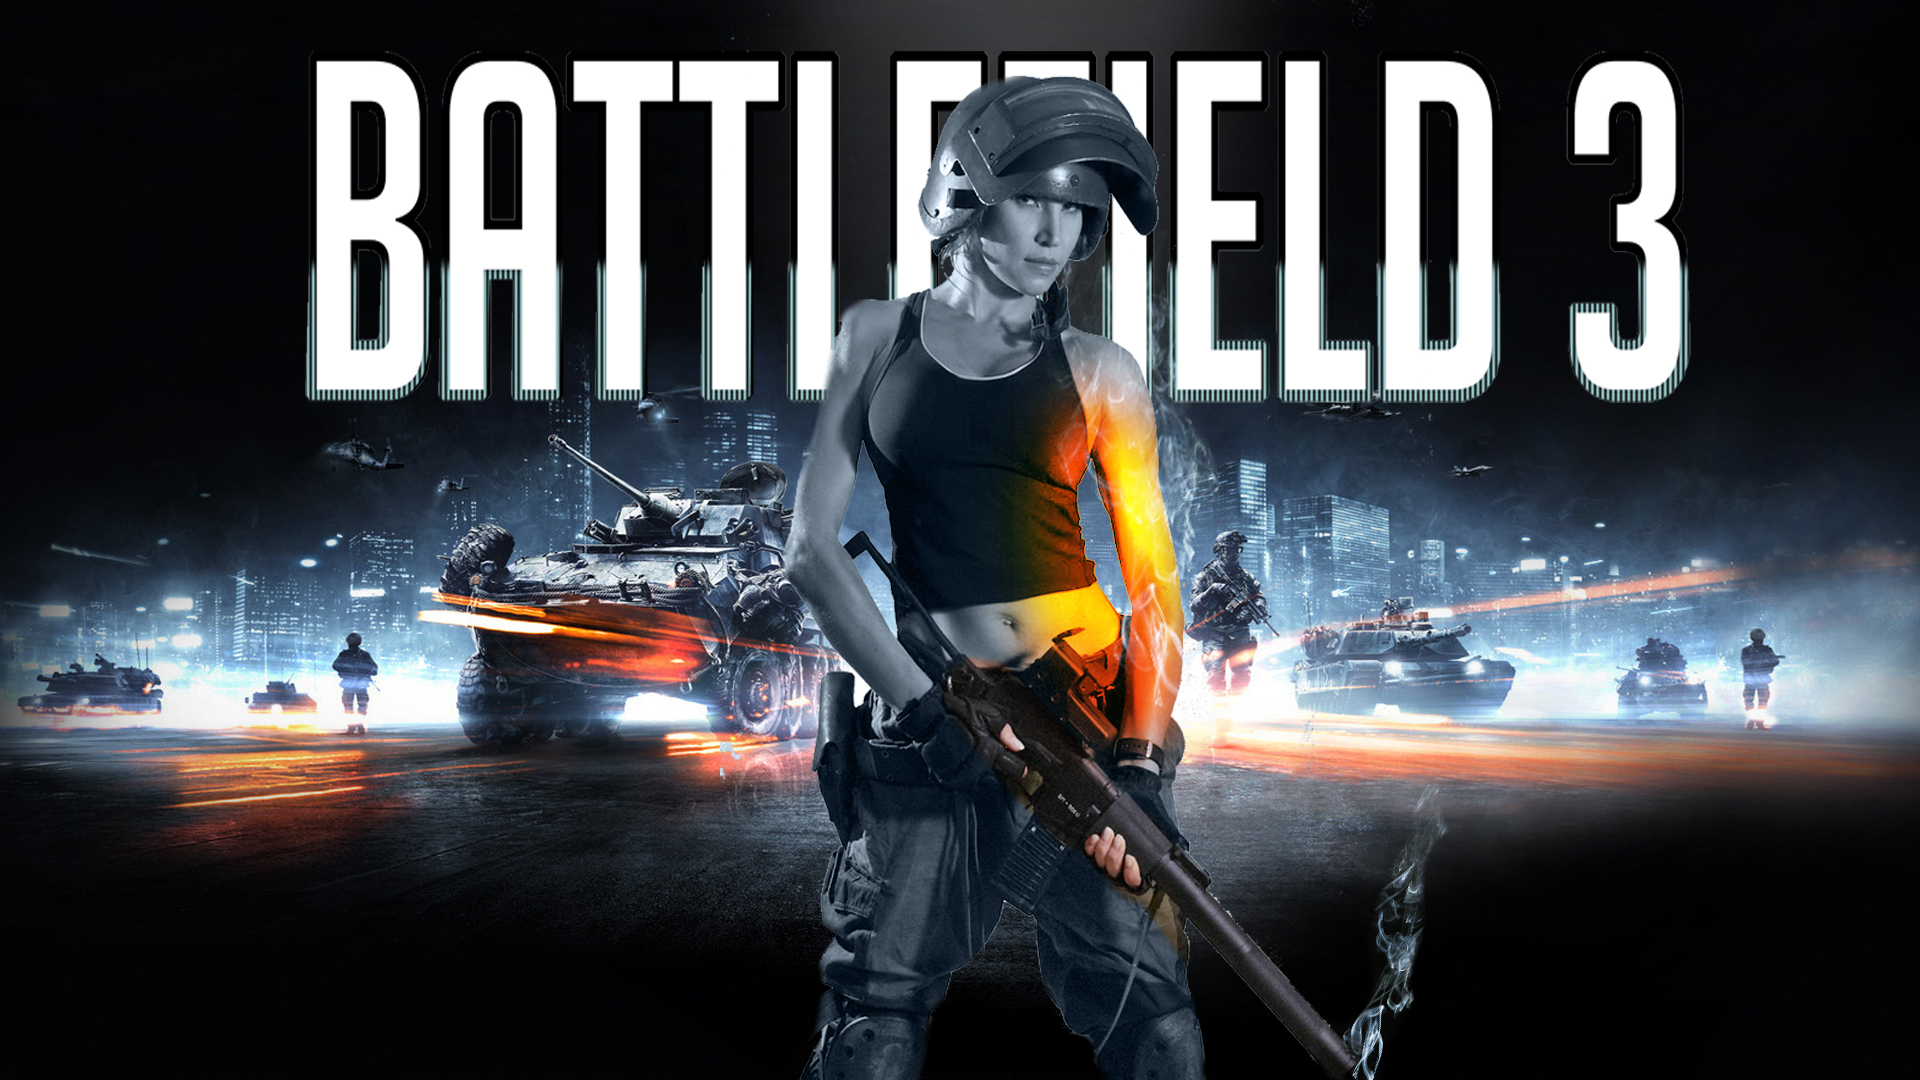 battlefield 3 poster girlbillym12345 on deviantart